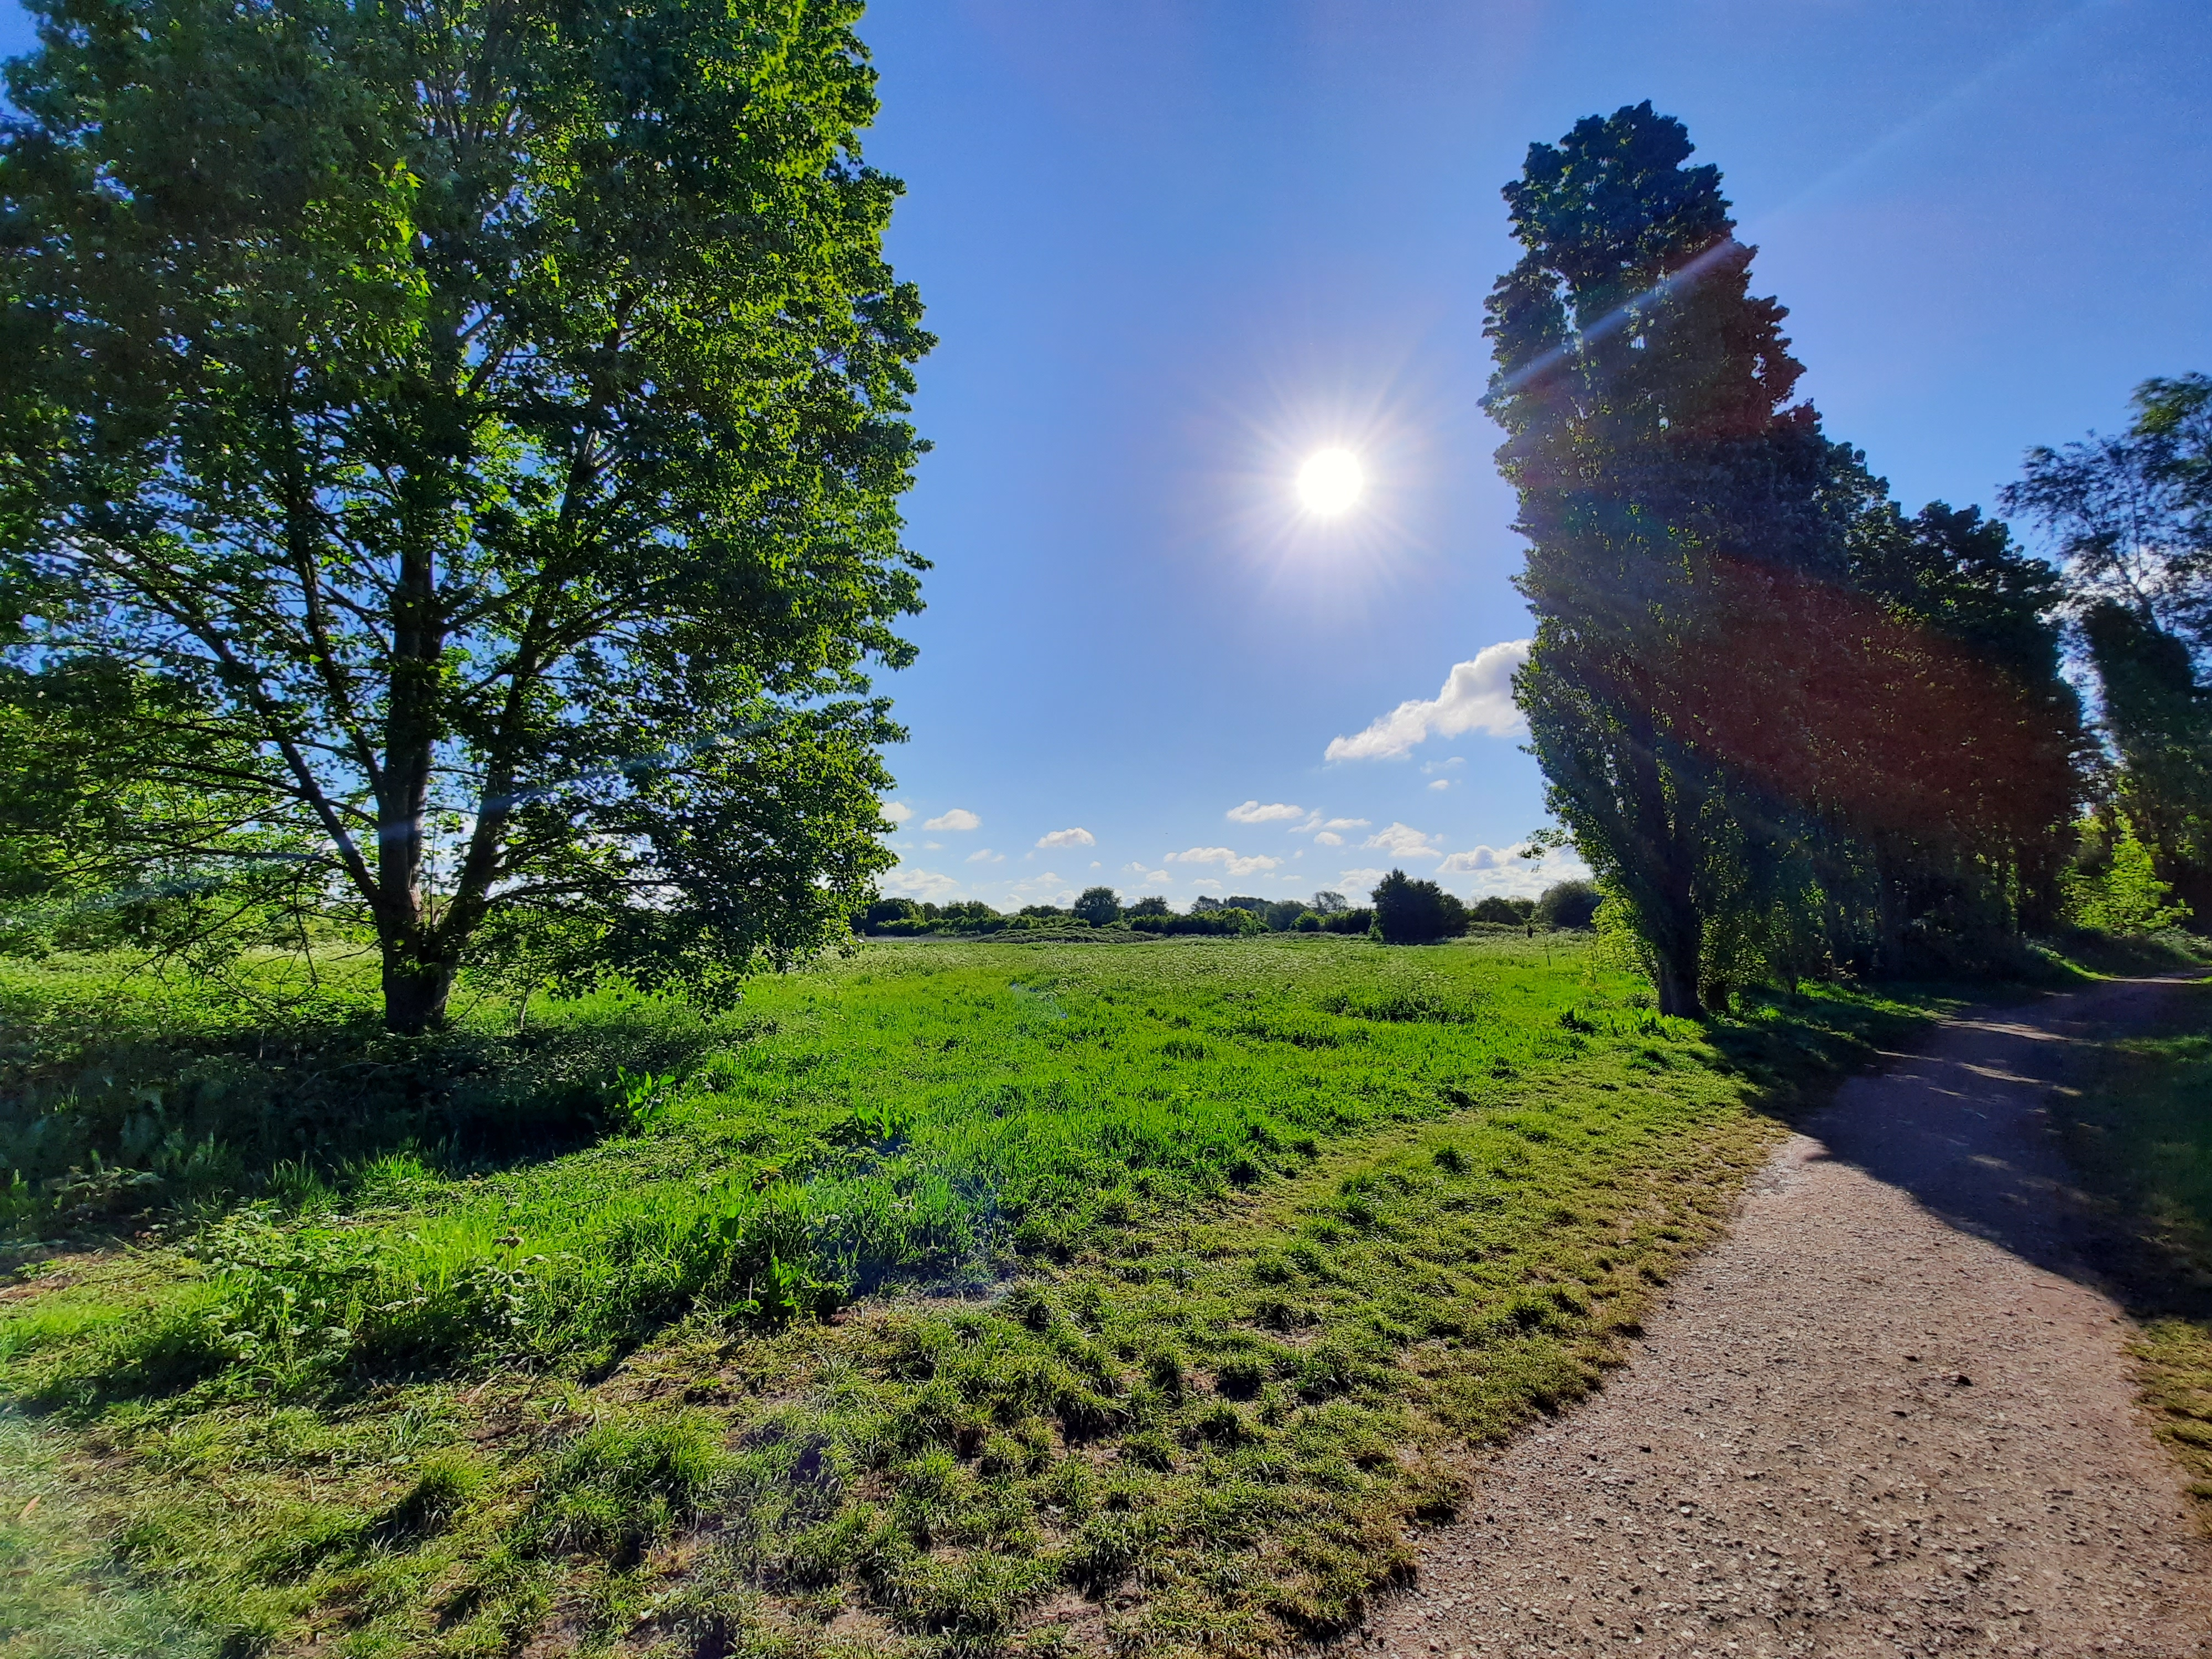 Dynamic range enhancement is about as effective as Samsung's more expensive phones: sun in the shot, but the foreground is still fairly bright and clear.